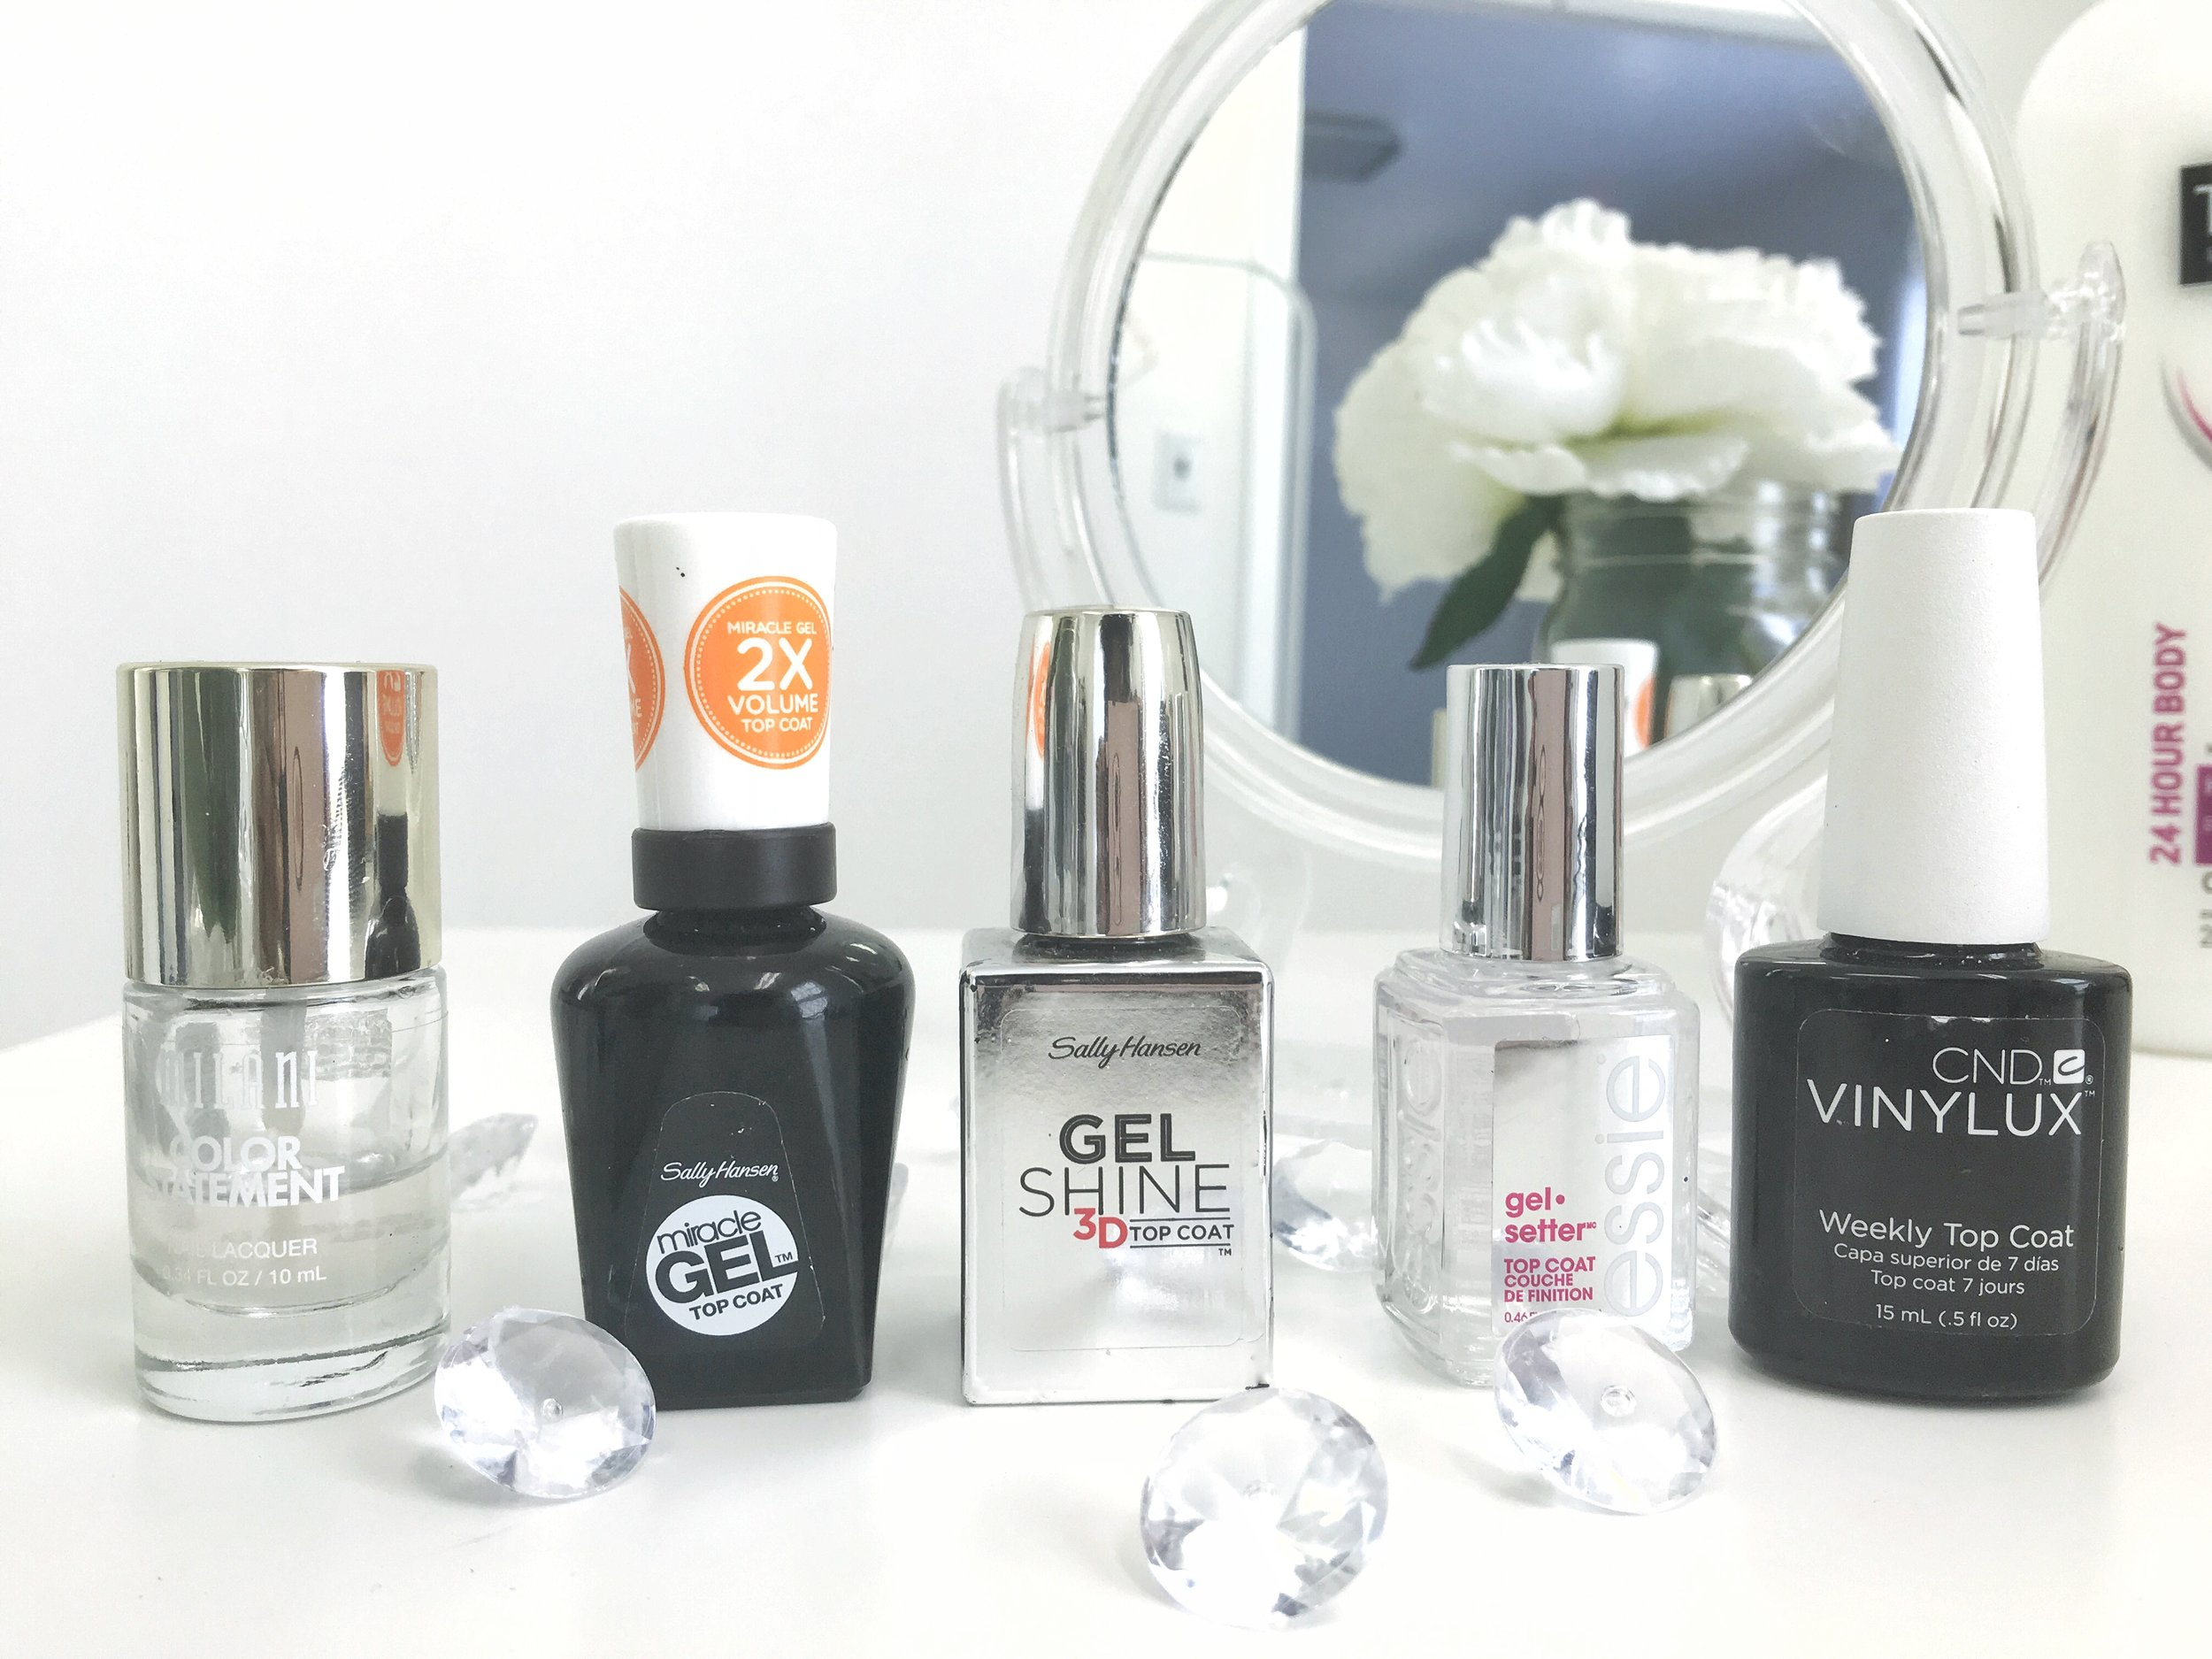 5 Top Coats I'm Loving Right Now